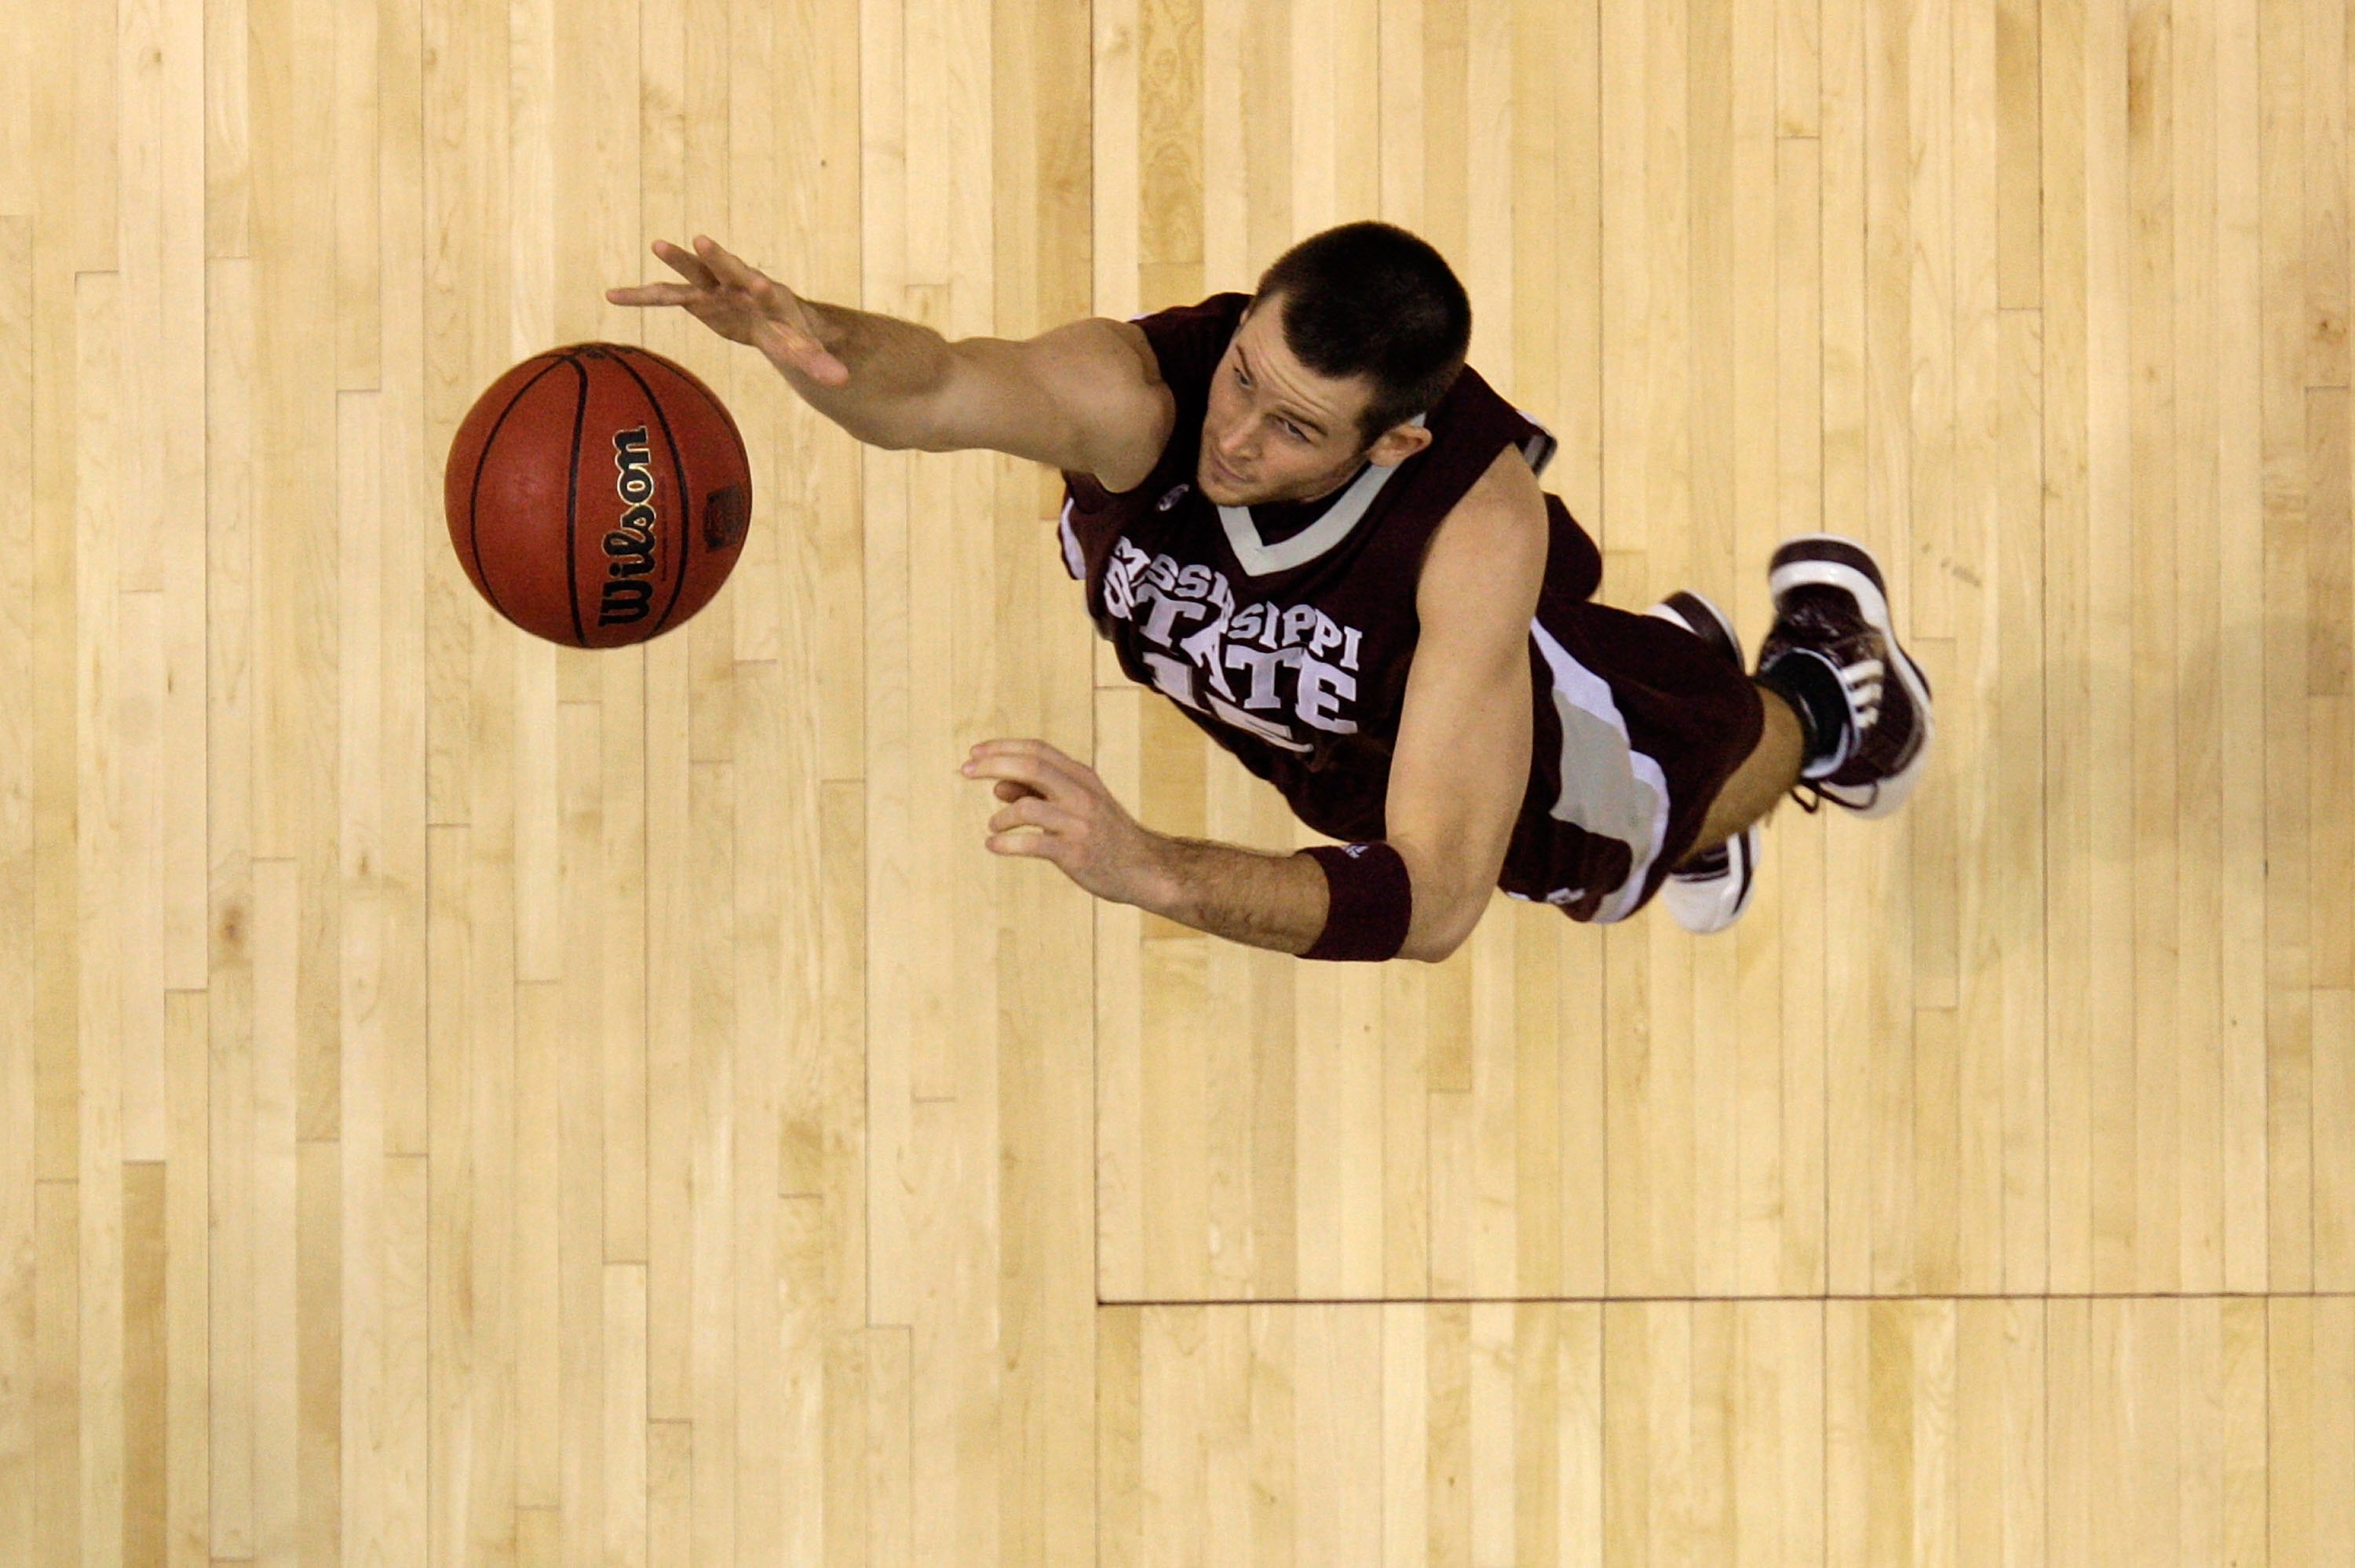 NASHVILLE, TN - MARCH 14:  Riley Benock #15 of the Mississippi State Bulldogs reaches for a rebound against the Kentucky Wildcats during the final of the SEC Men's Basketball Tournament at the Bridgestone Arena on March 14, 2010 in Nashville, Tennessee. K